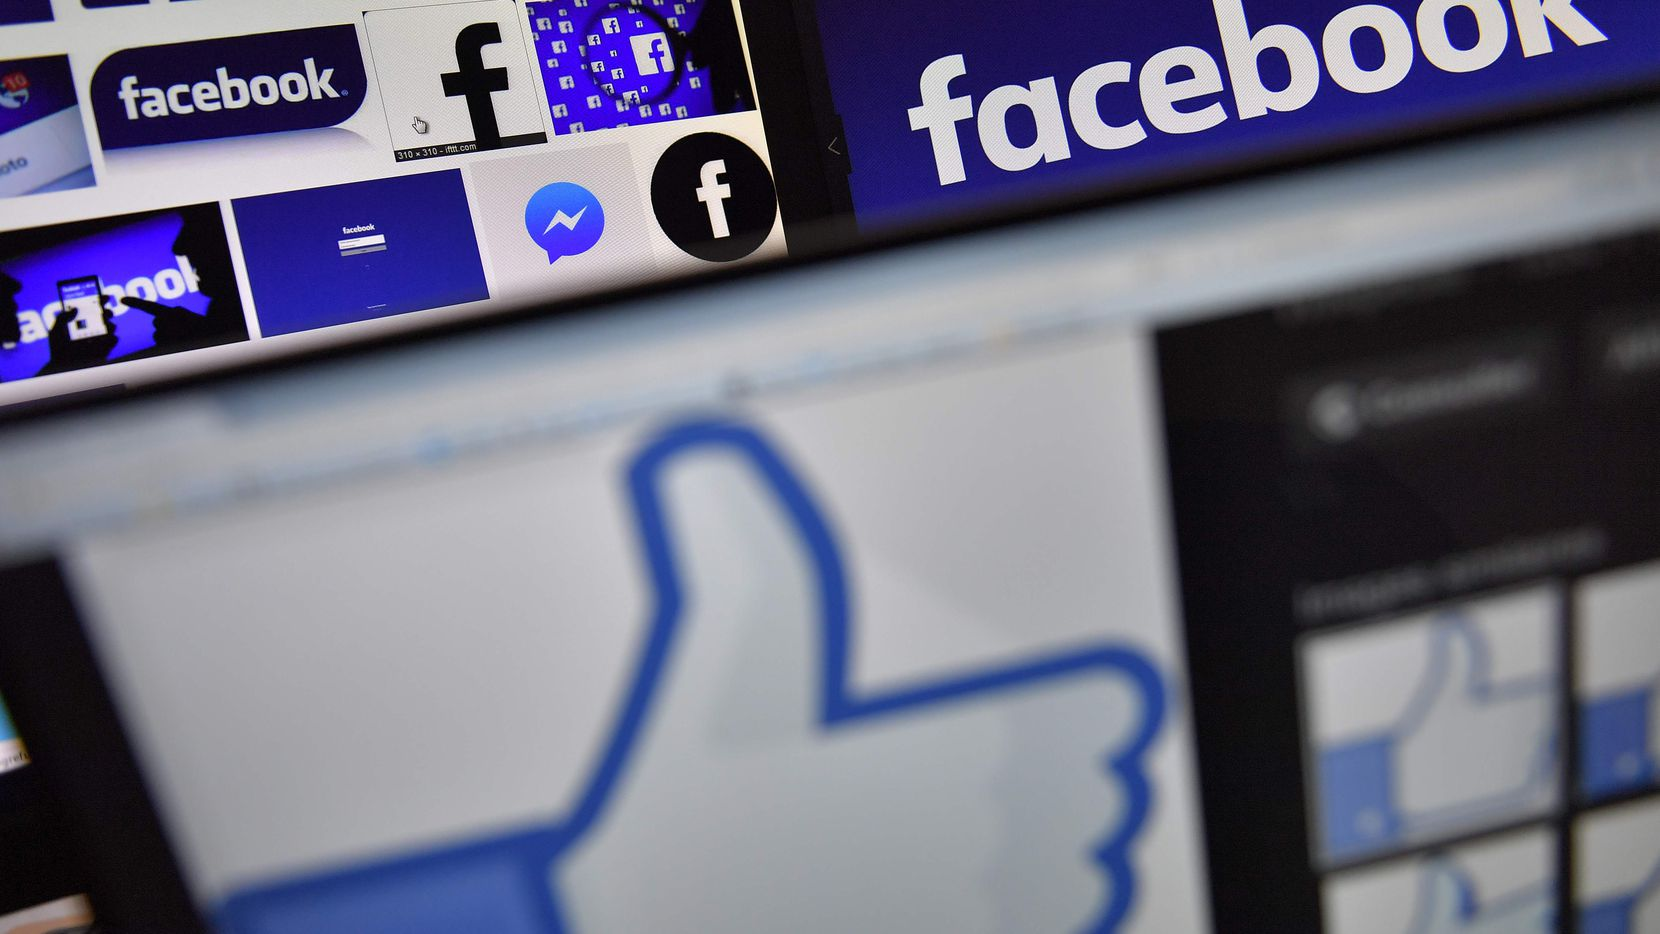 """Facebook said Wednesday that it is """"outraged"""" by misuse of data by Cambridge Analytica, the British firm at the center of a major data scandal rocking Facebook."""